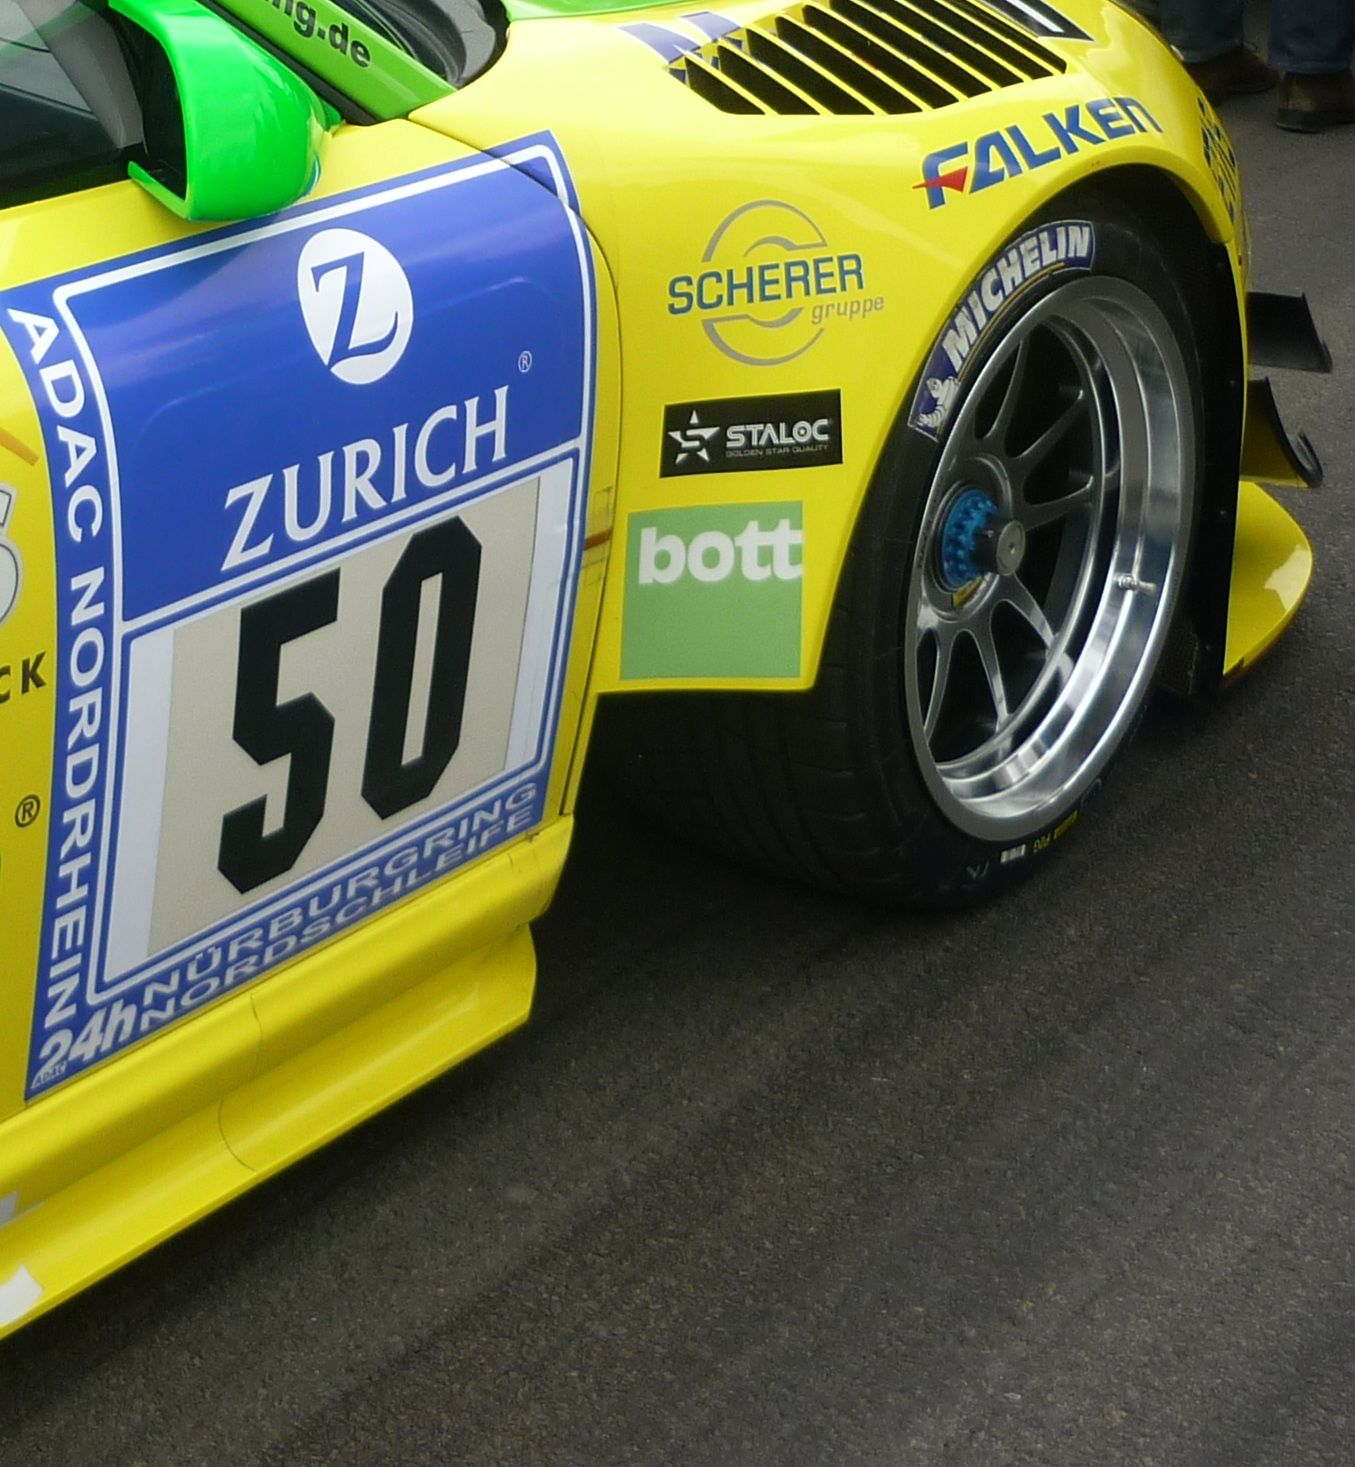 Manthey-Porsche detail